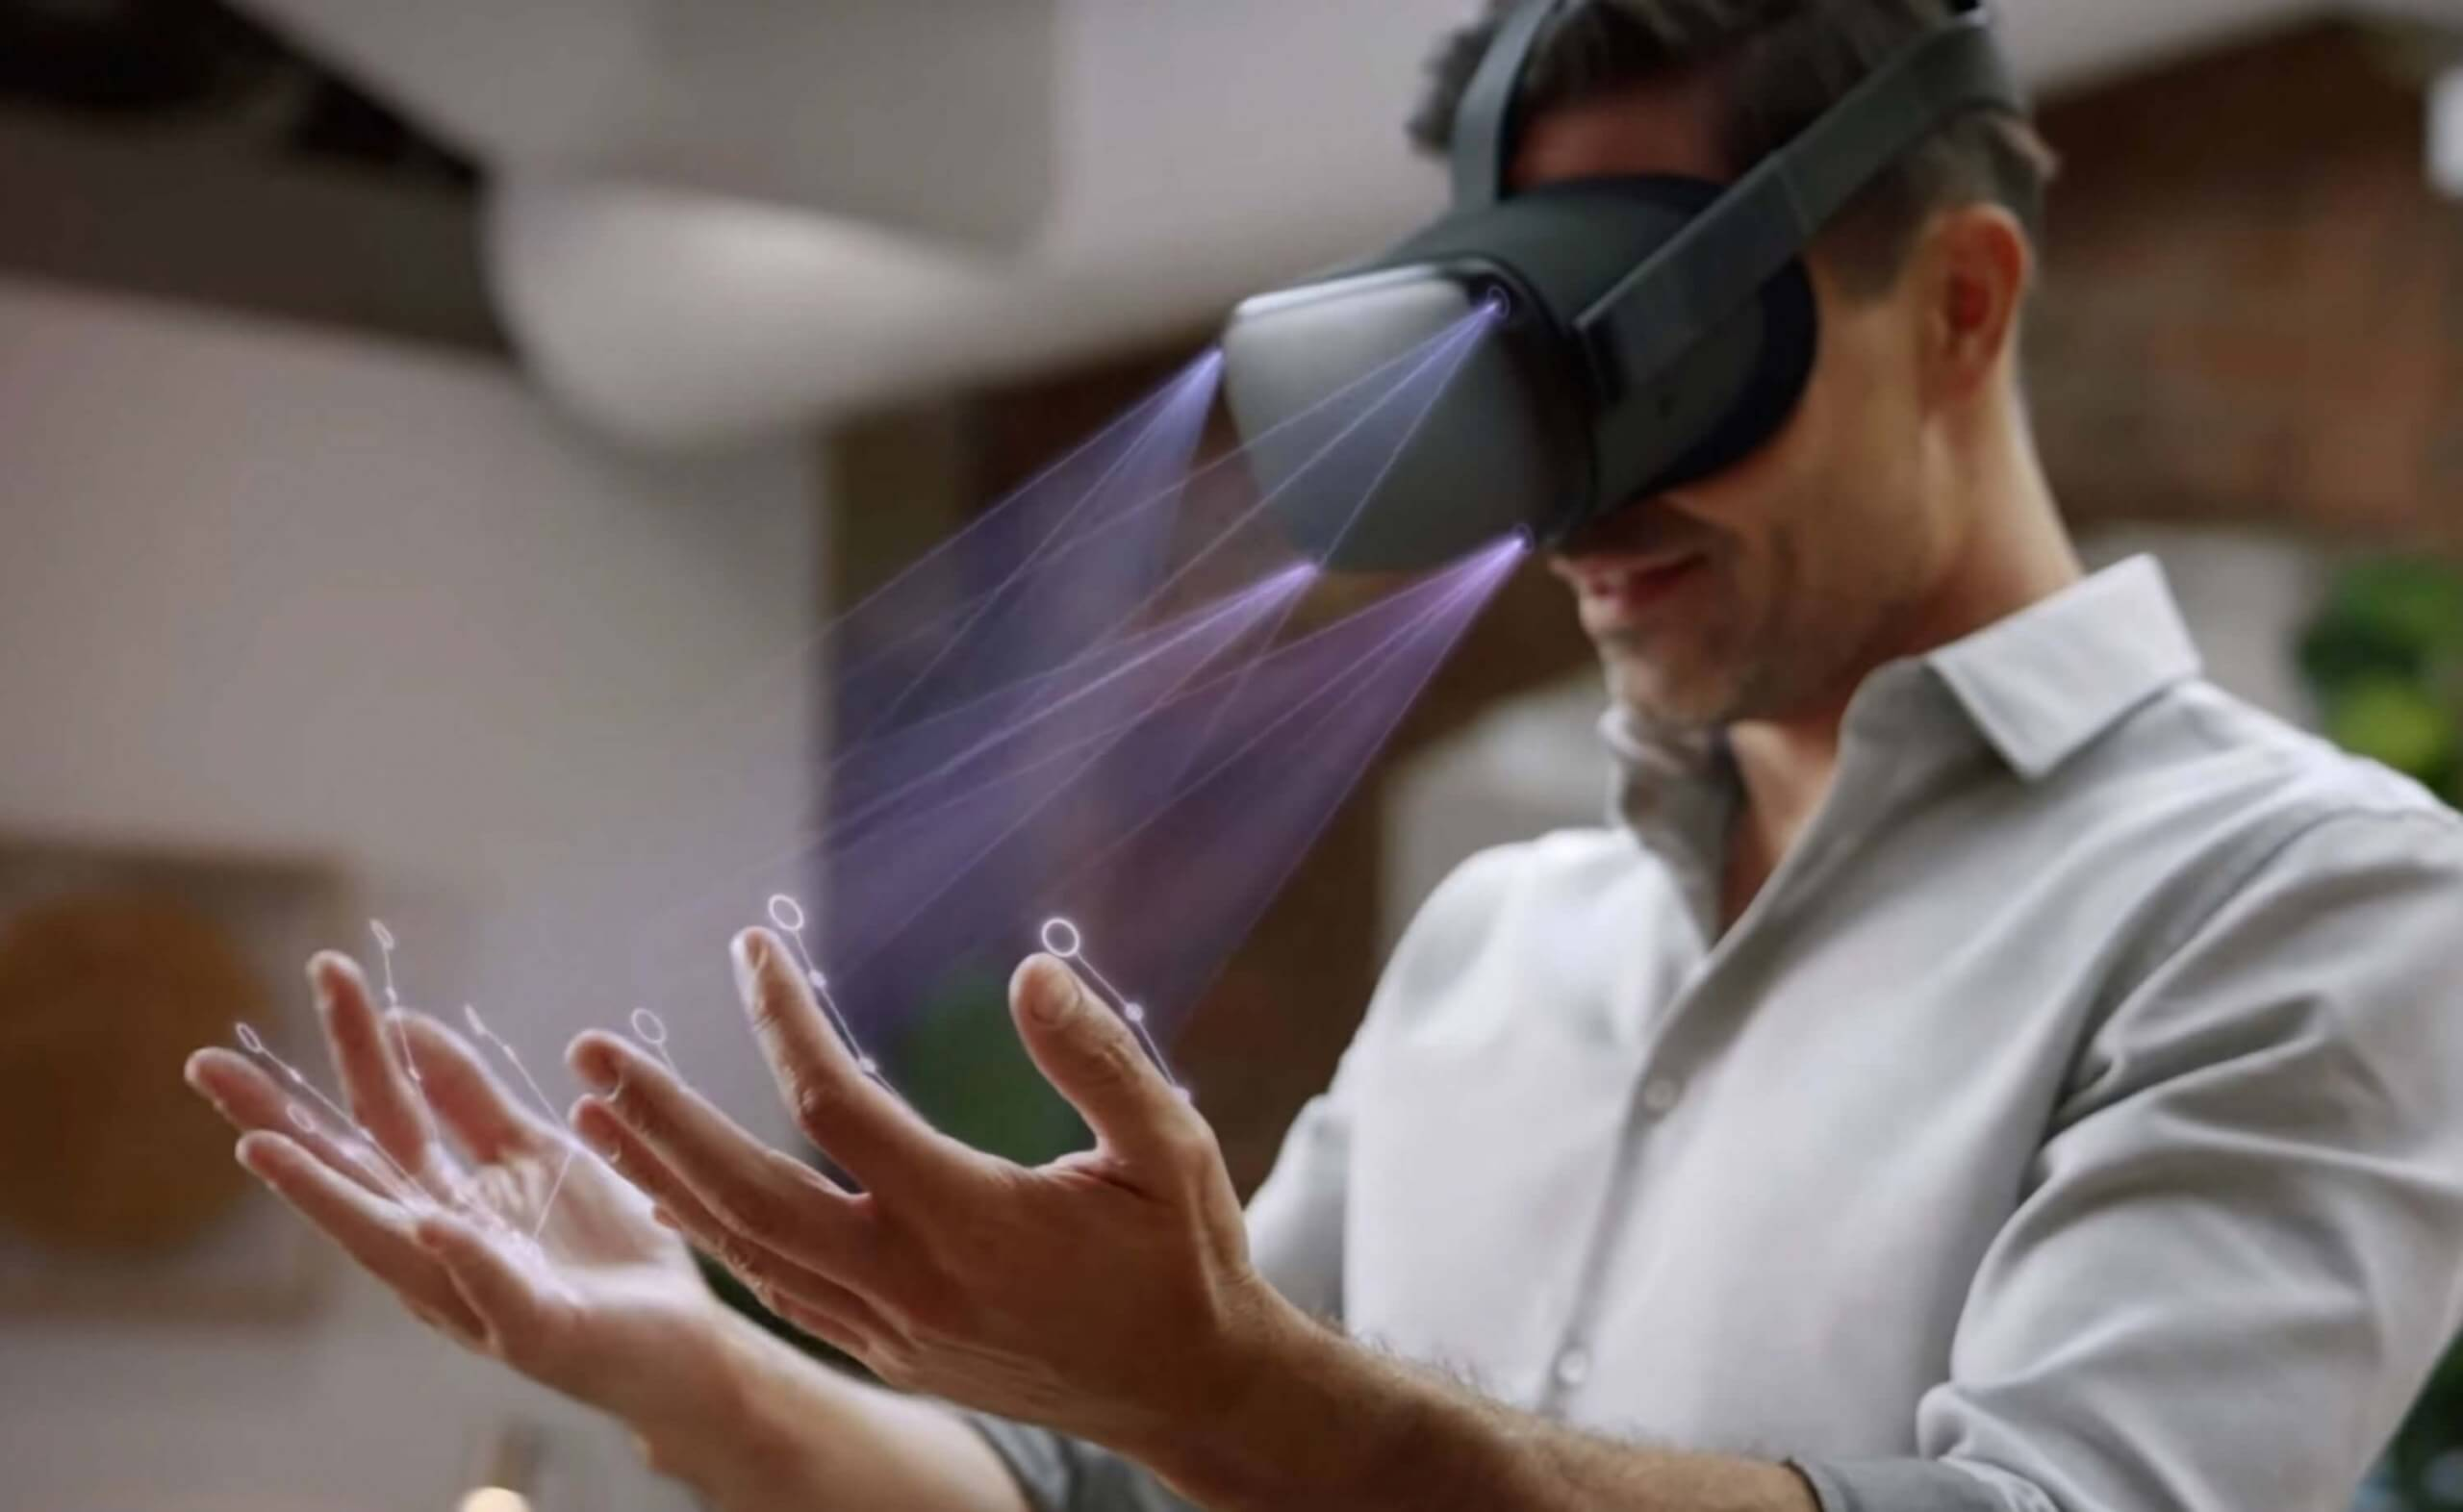 Oculus Quest hand tracking is actually coming soon